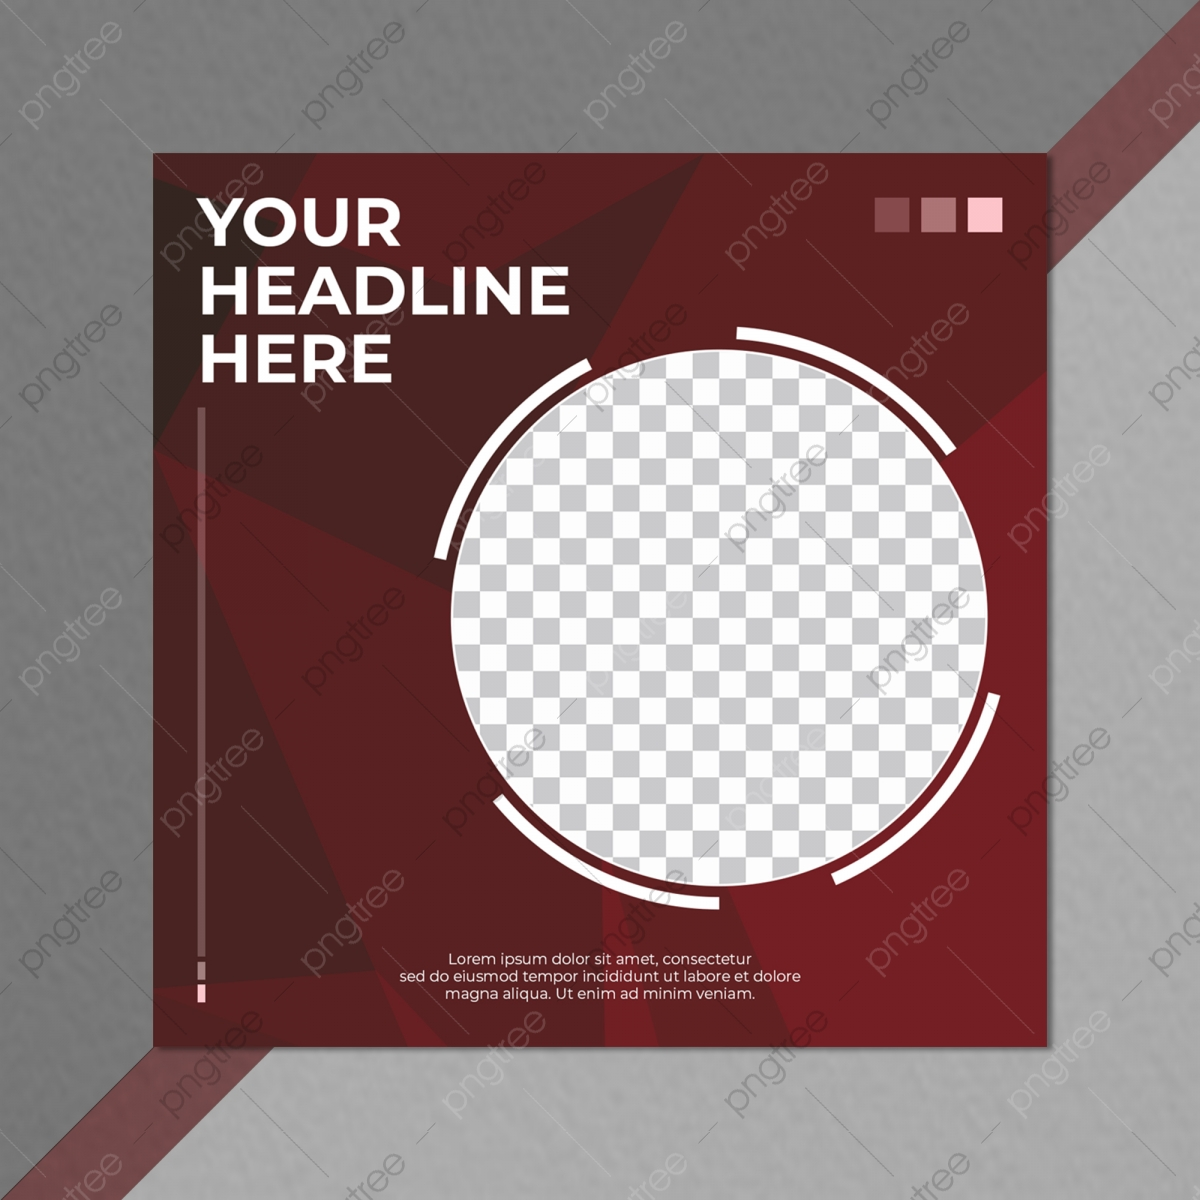 Trendy Social Media Square Size Sale Post Design Template For Free Download On Pngtree